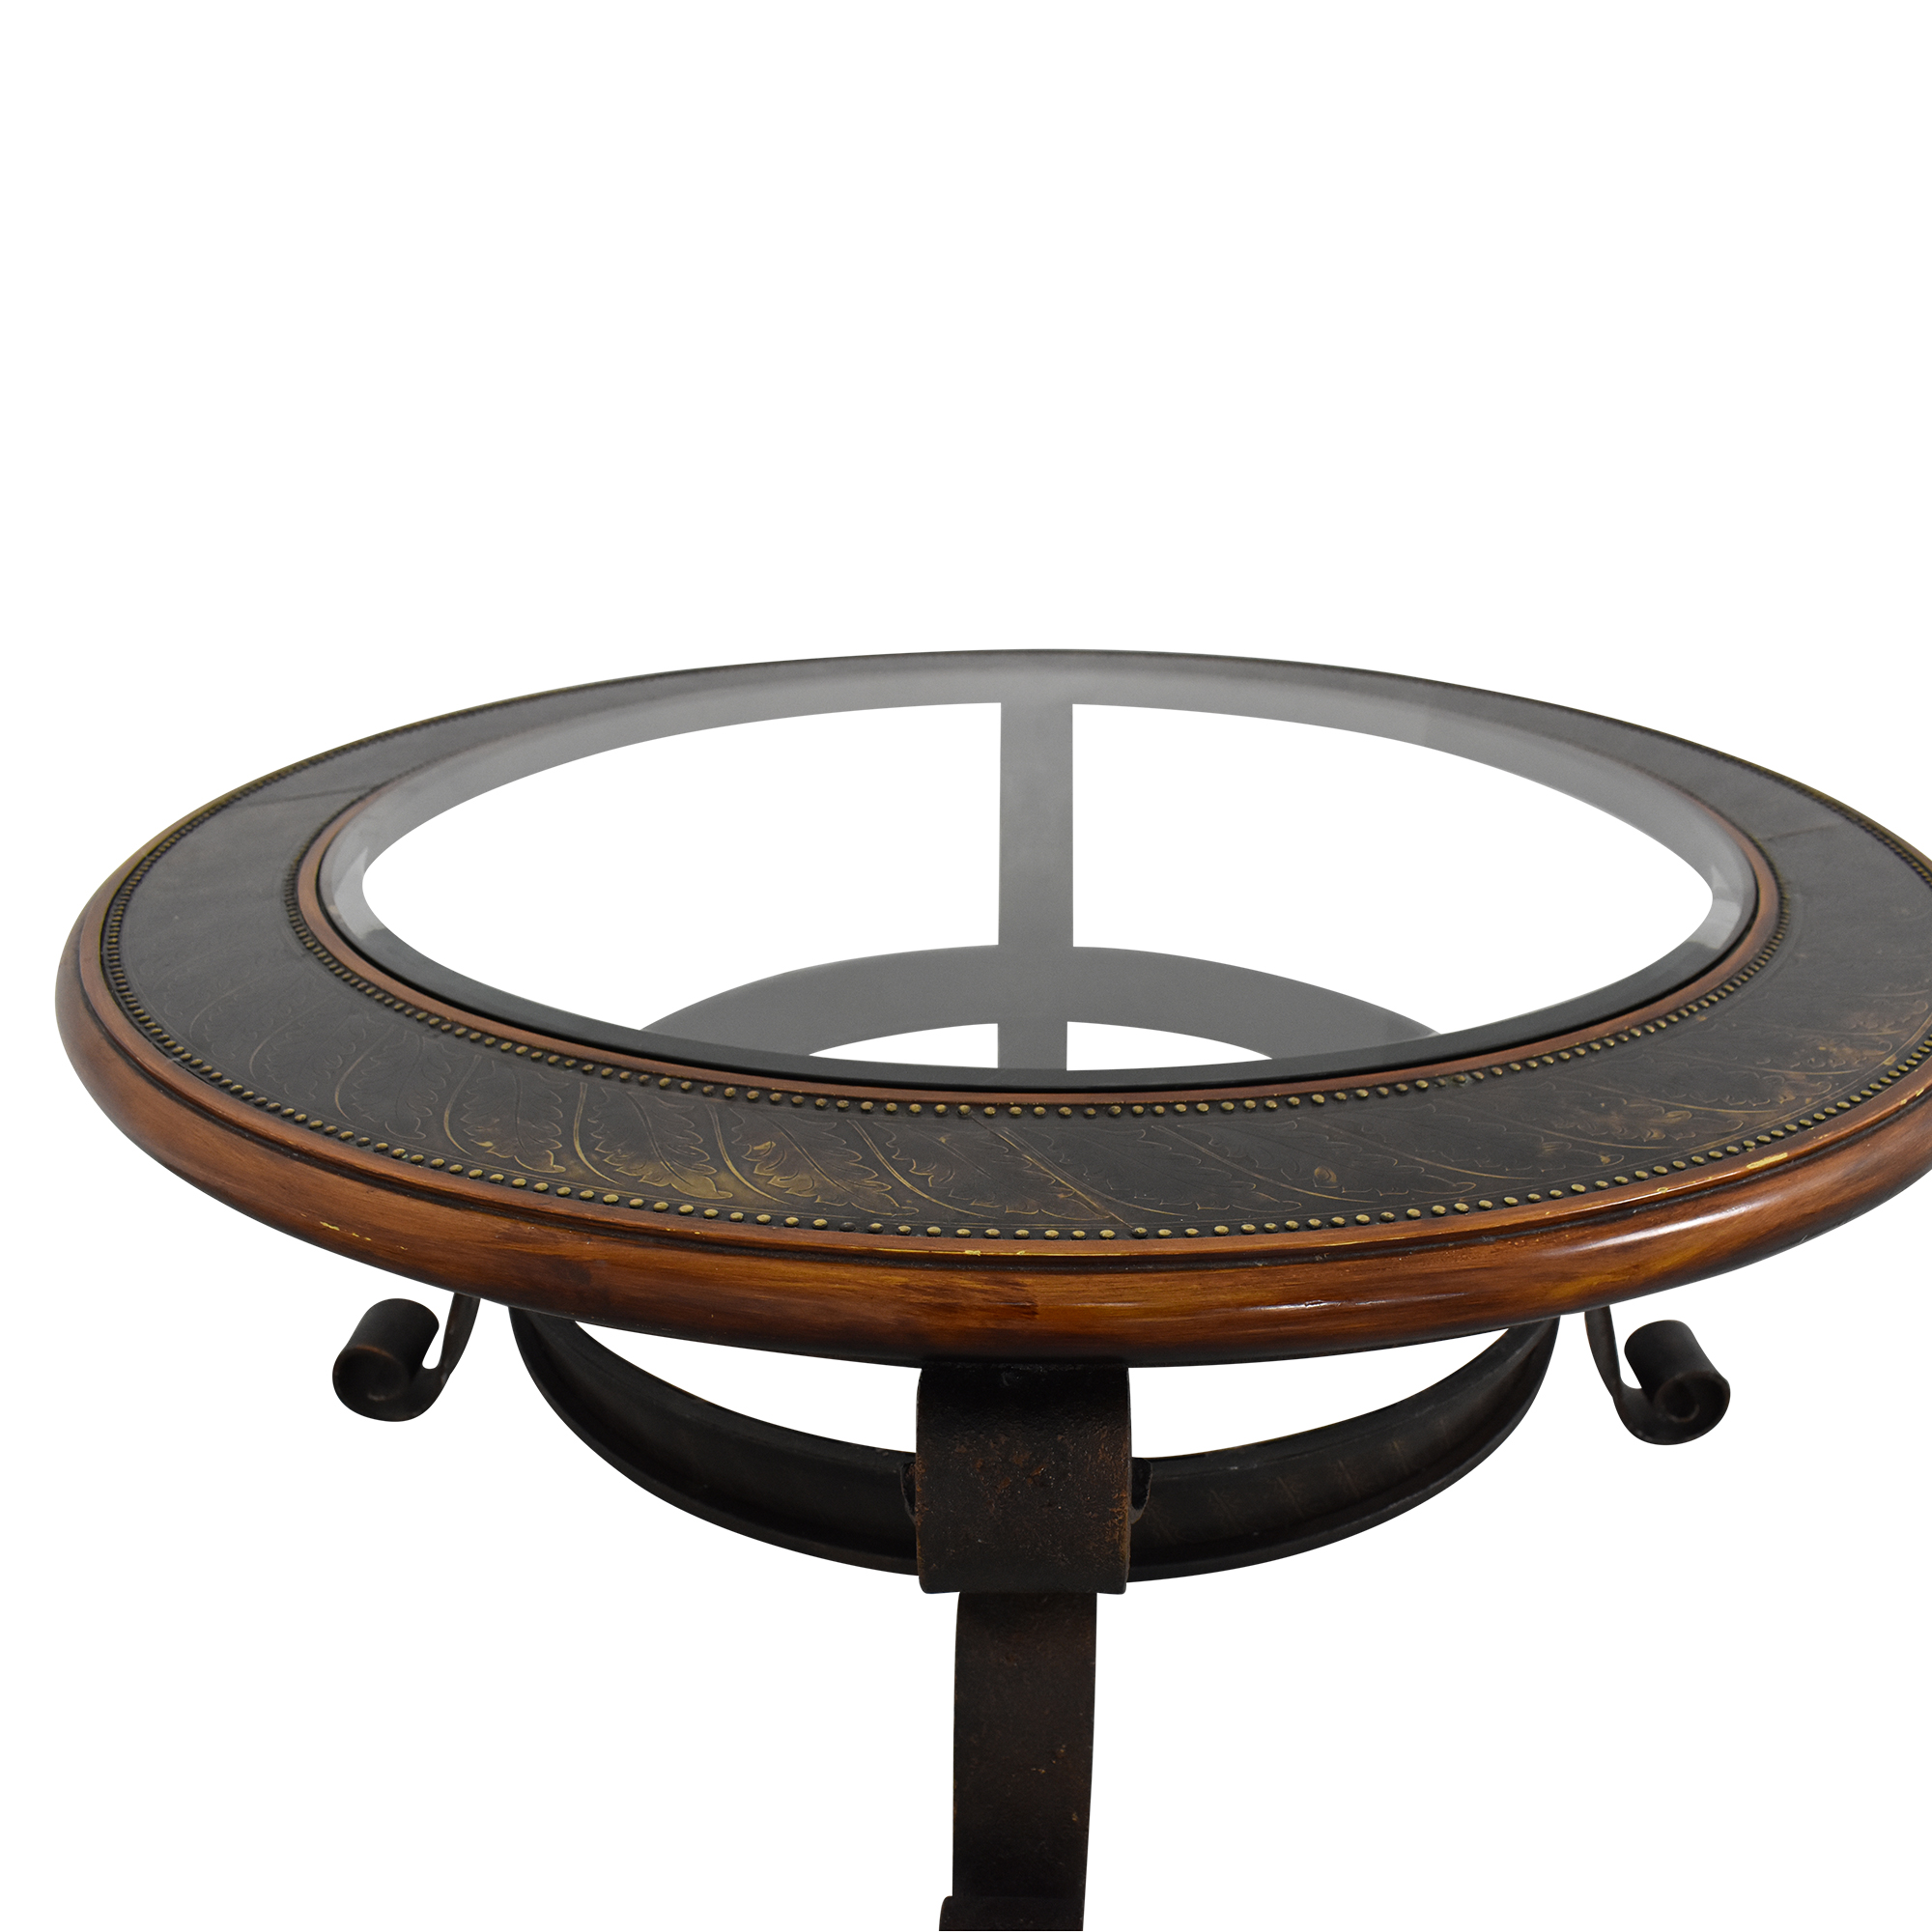 Maitland Smith Round Coffee Table / Tables